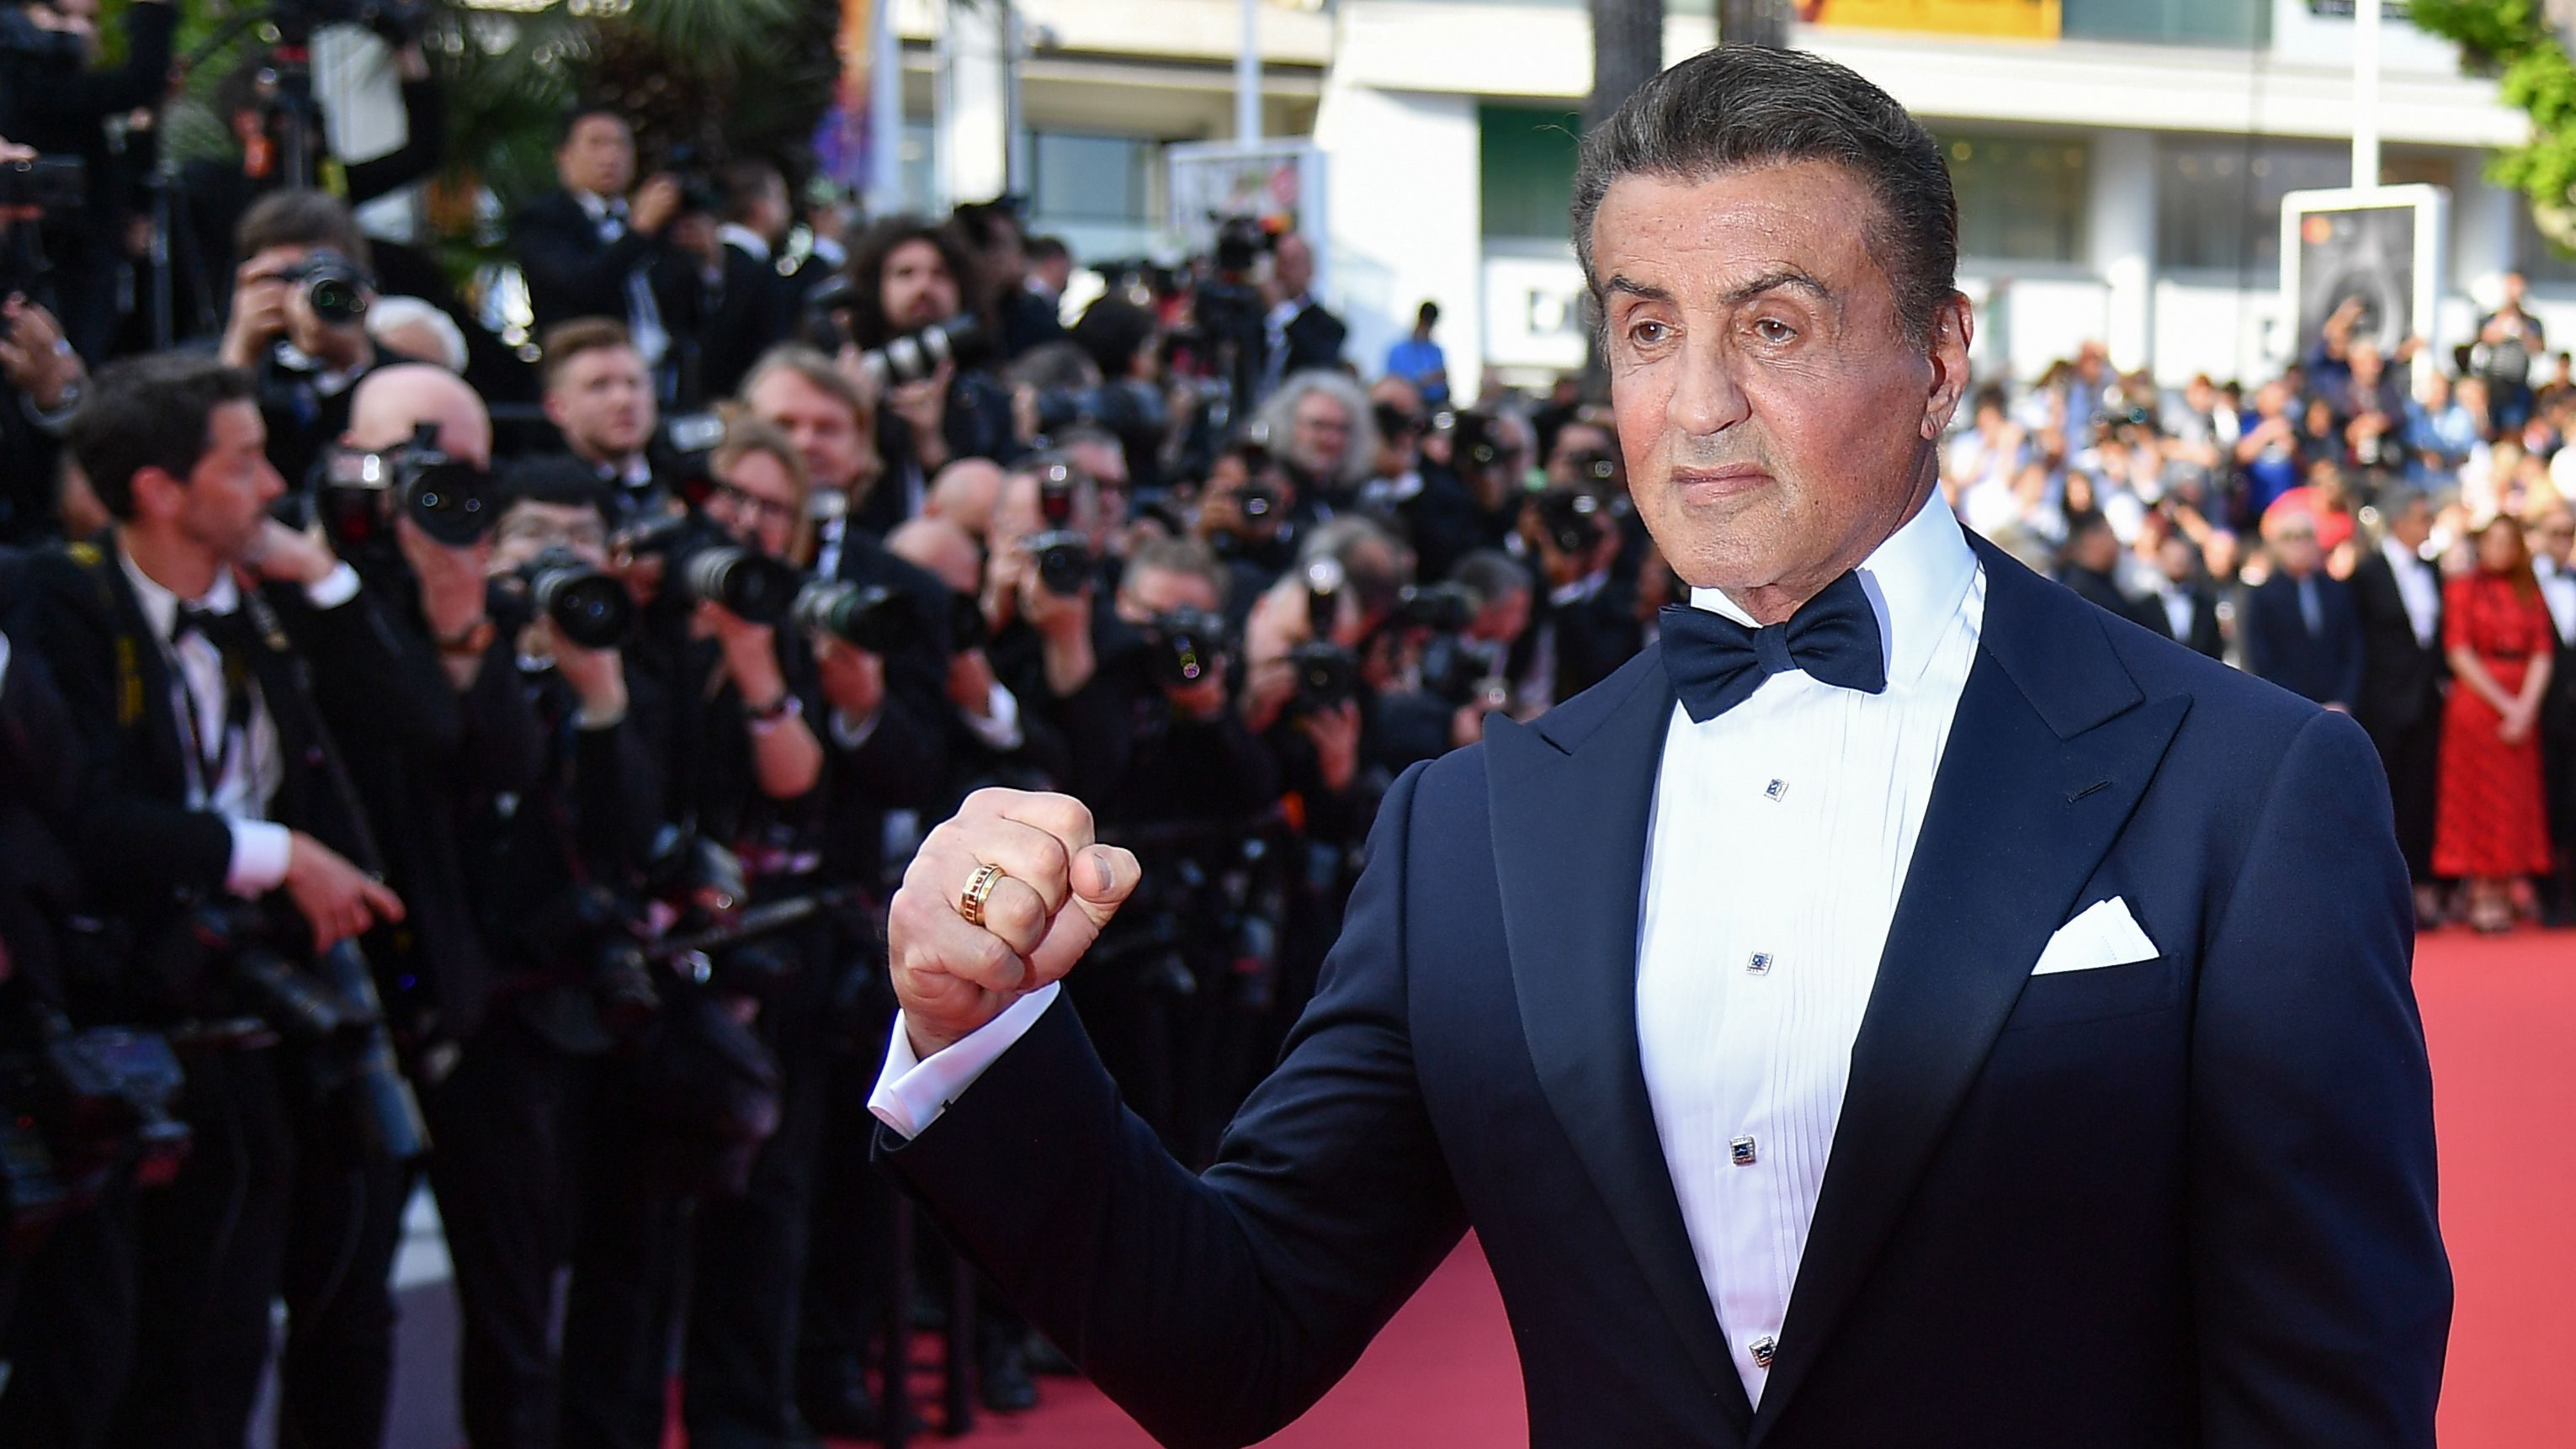 Sylvester Stallone Has a 'Great Idea' for Another 'Rocky' Film About Immigration: 'It Would Be Phenomenal'